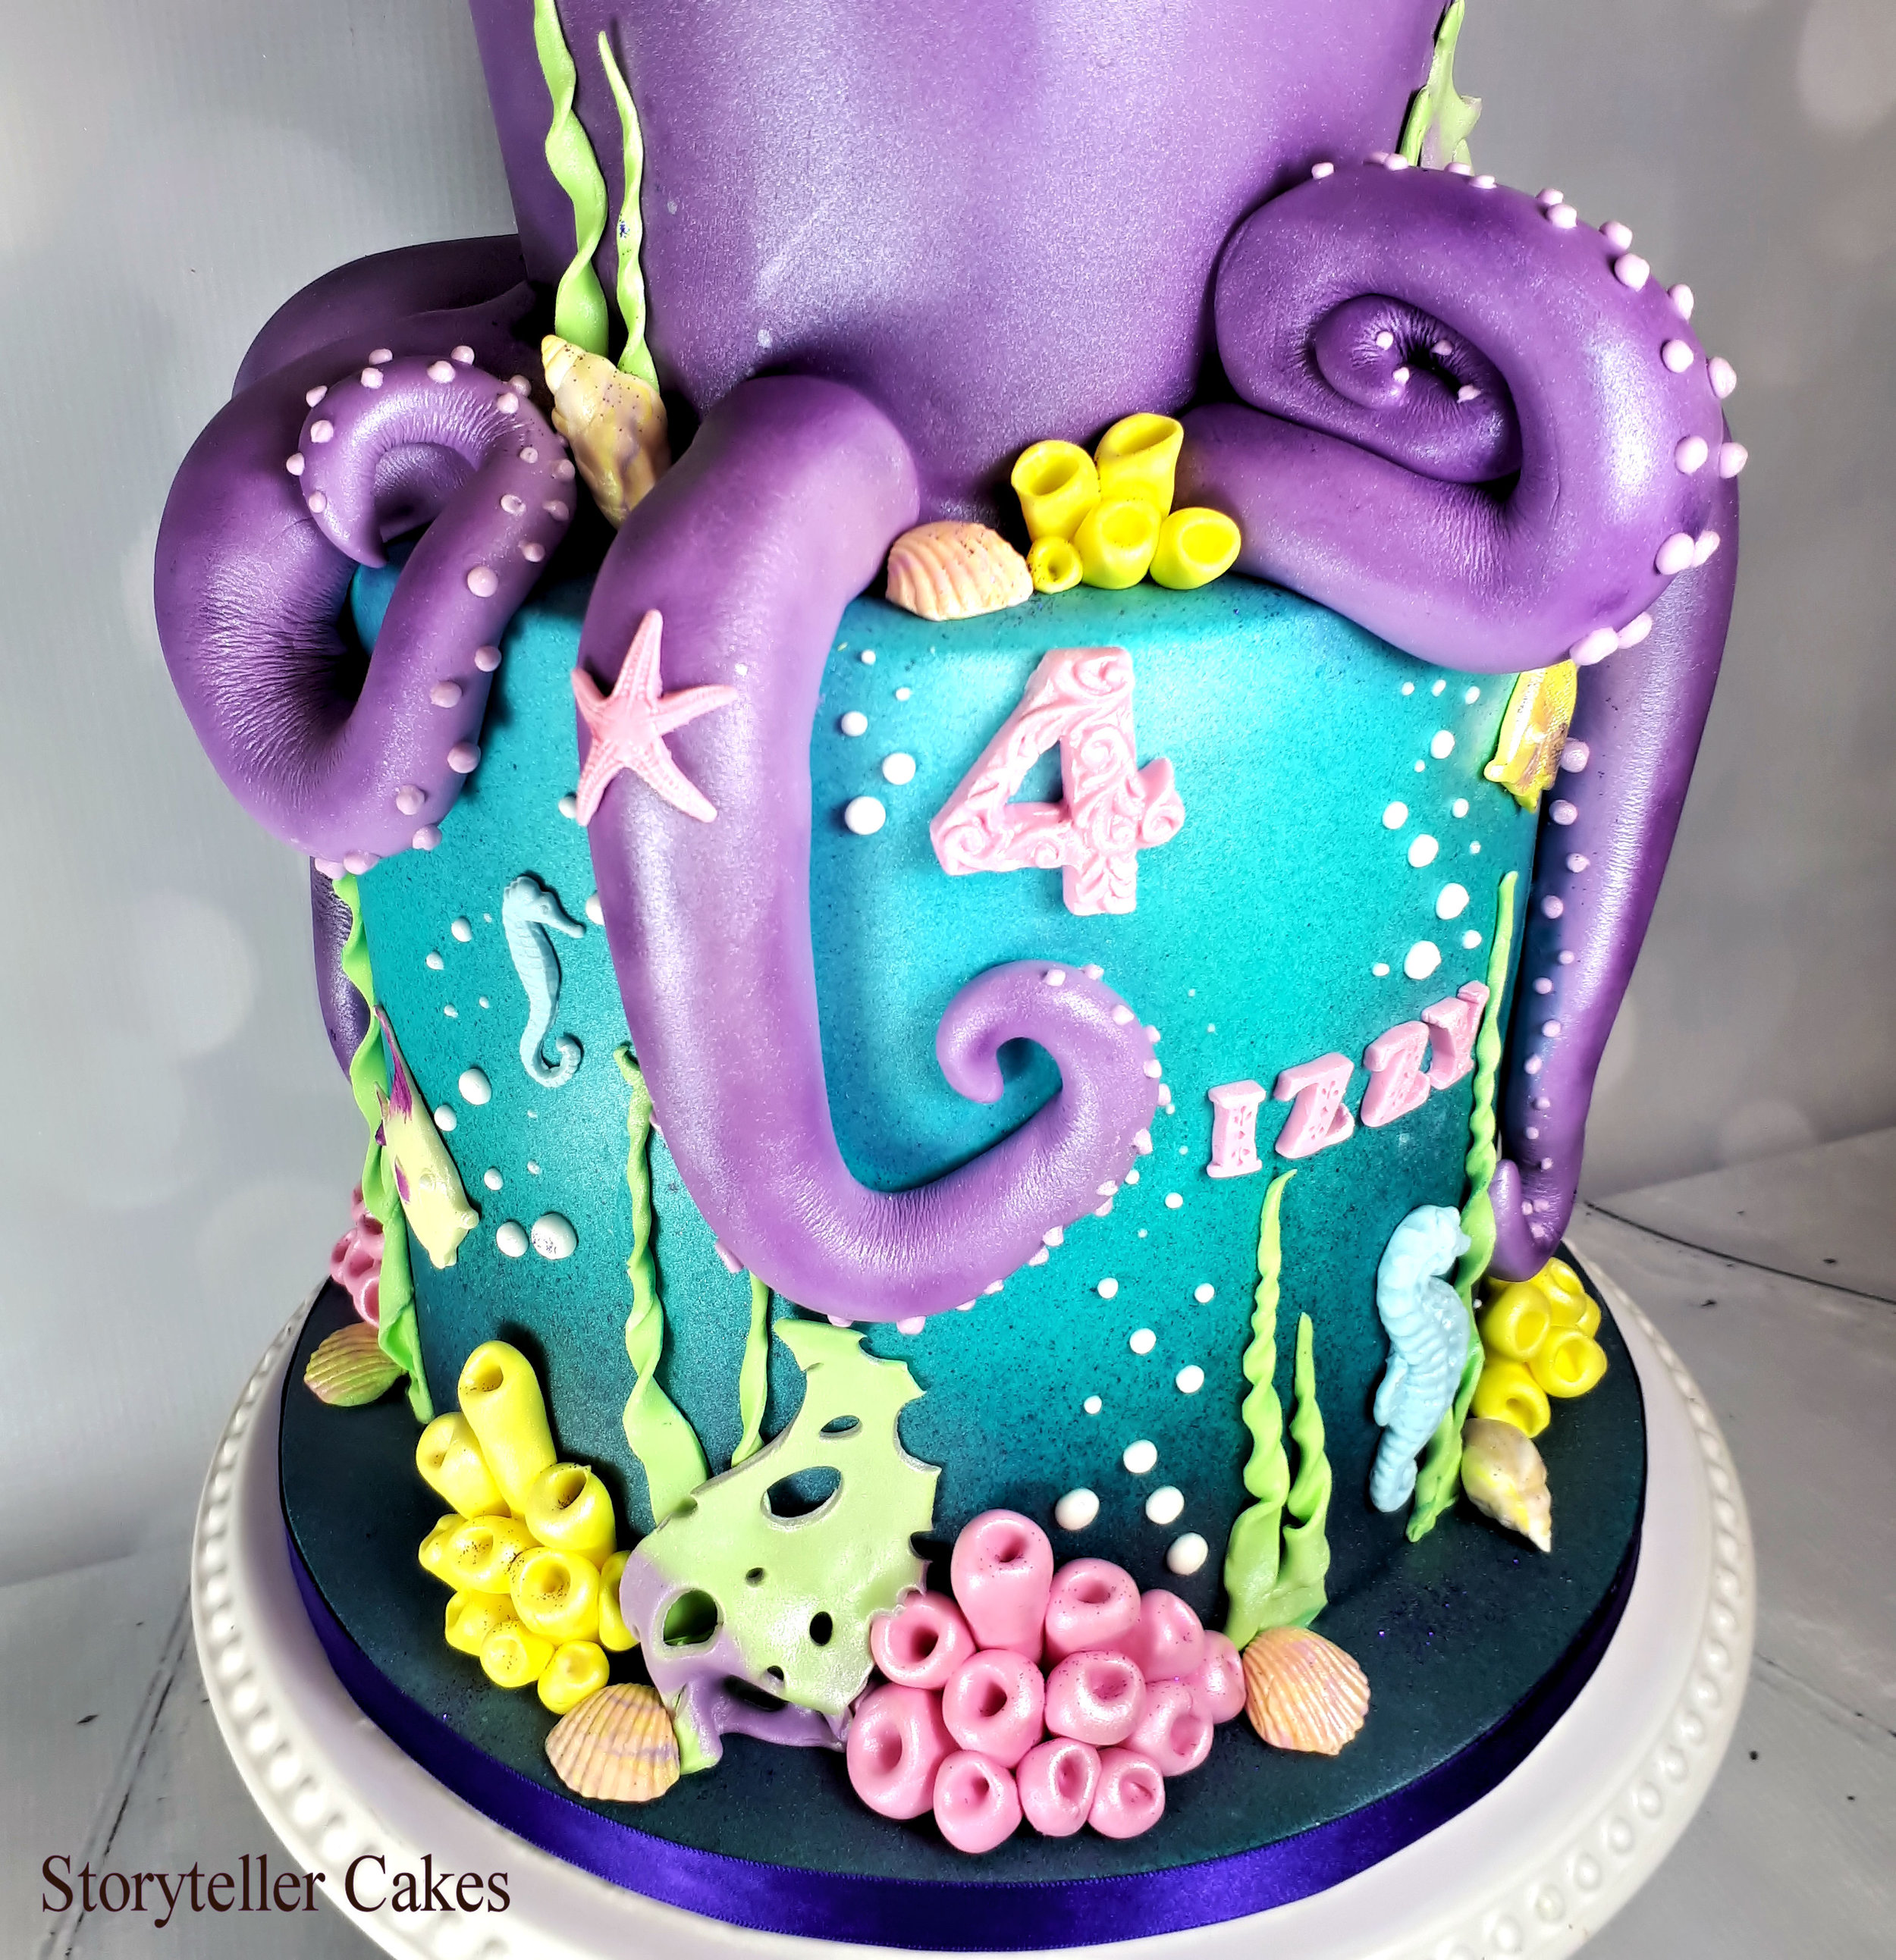 Octopus Under The Sea Cake 4.jpg